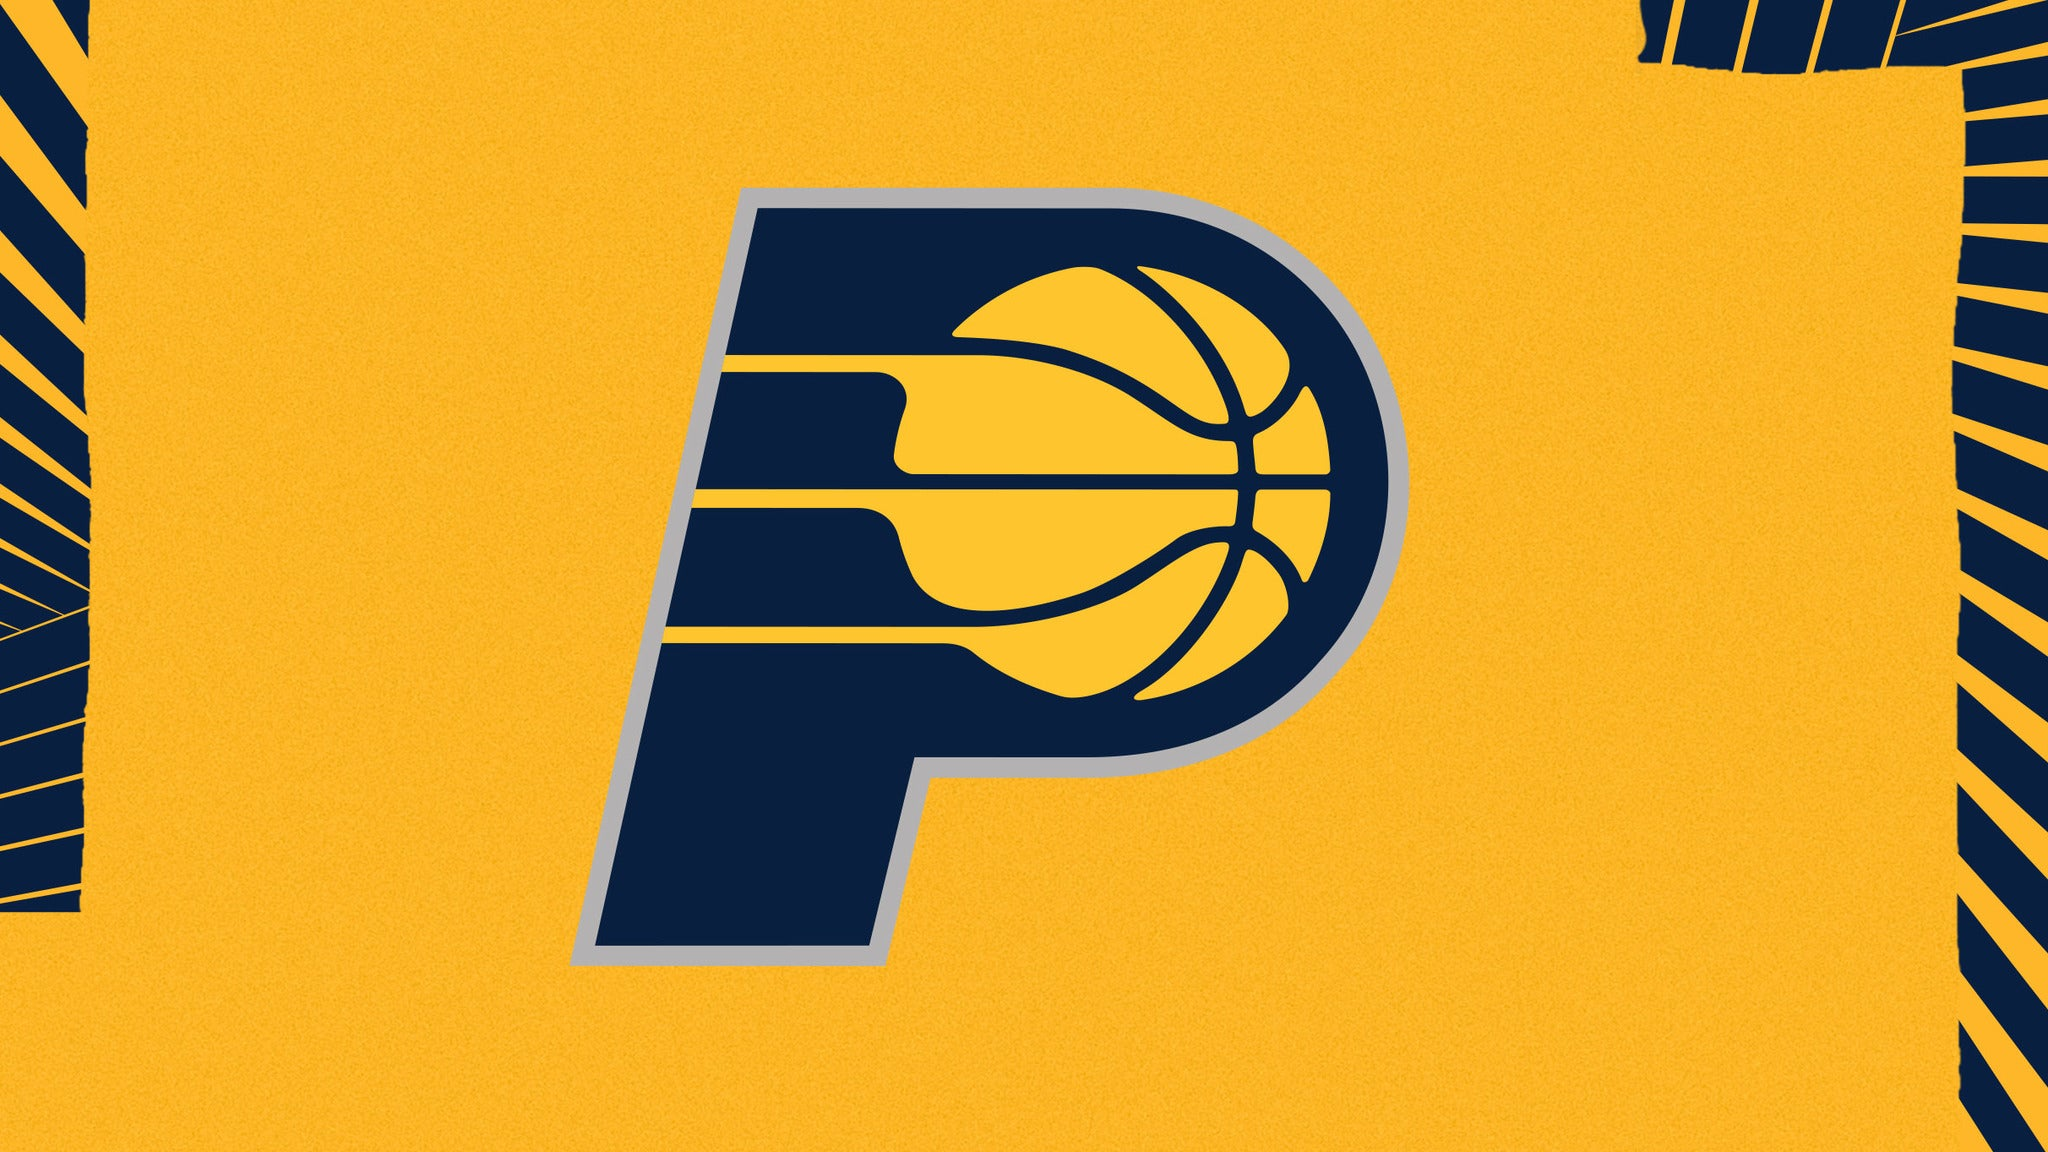 Indiana Pacers v. Sacramento Kings